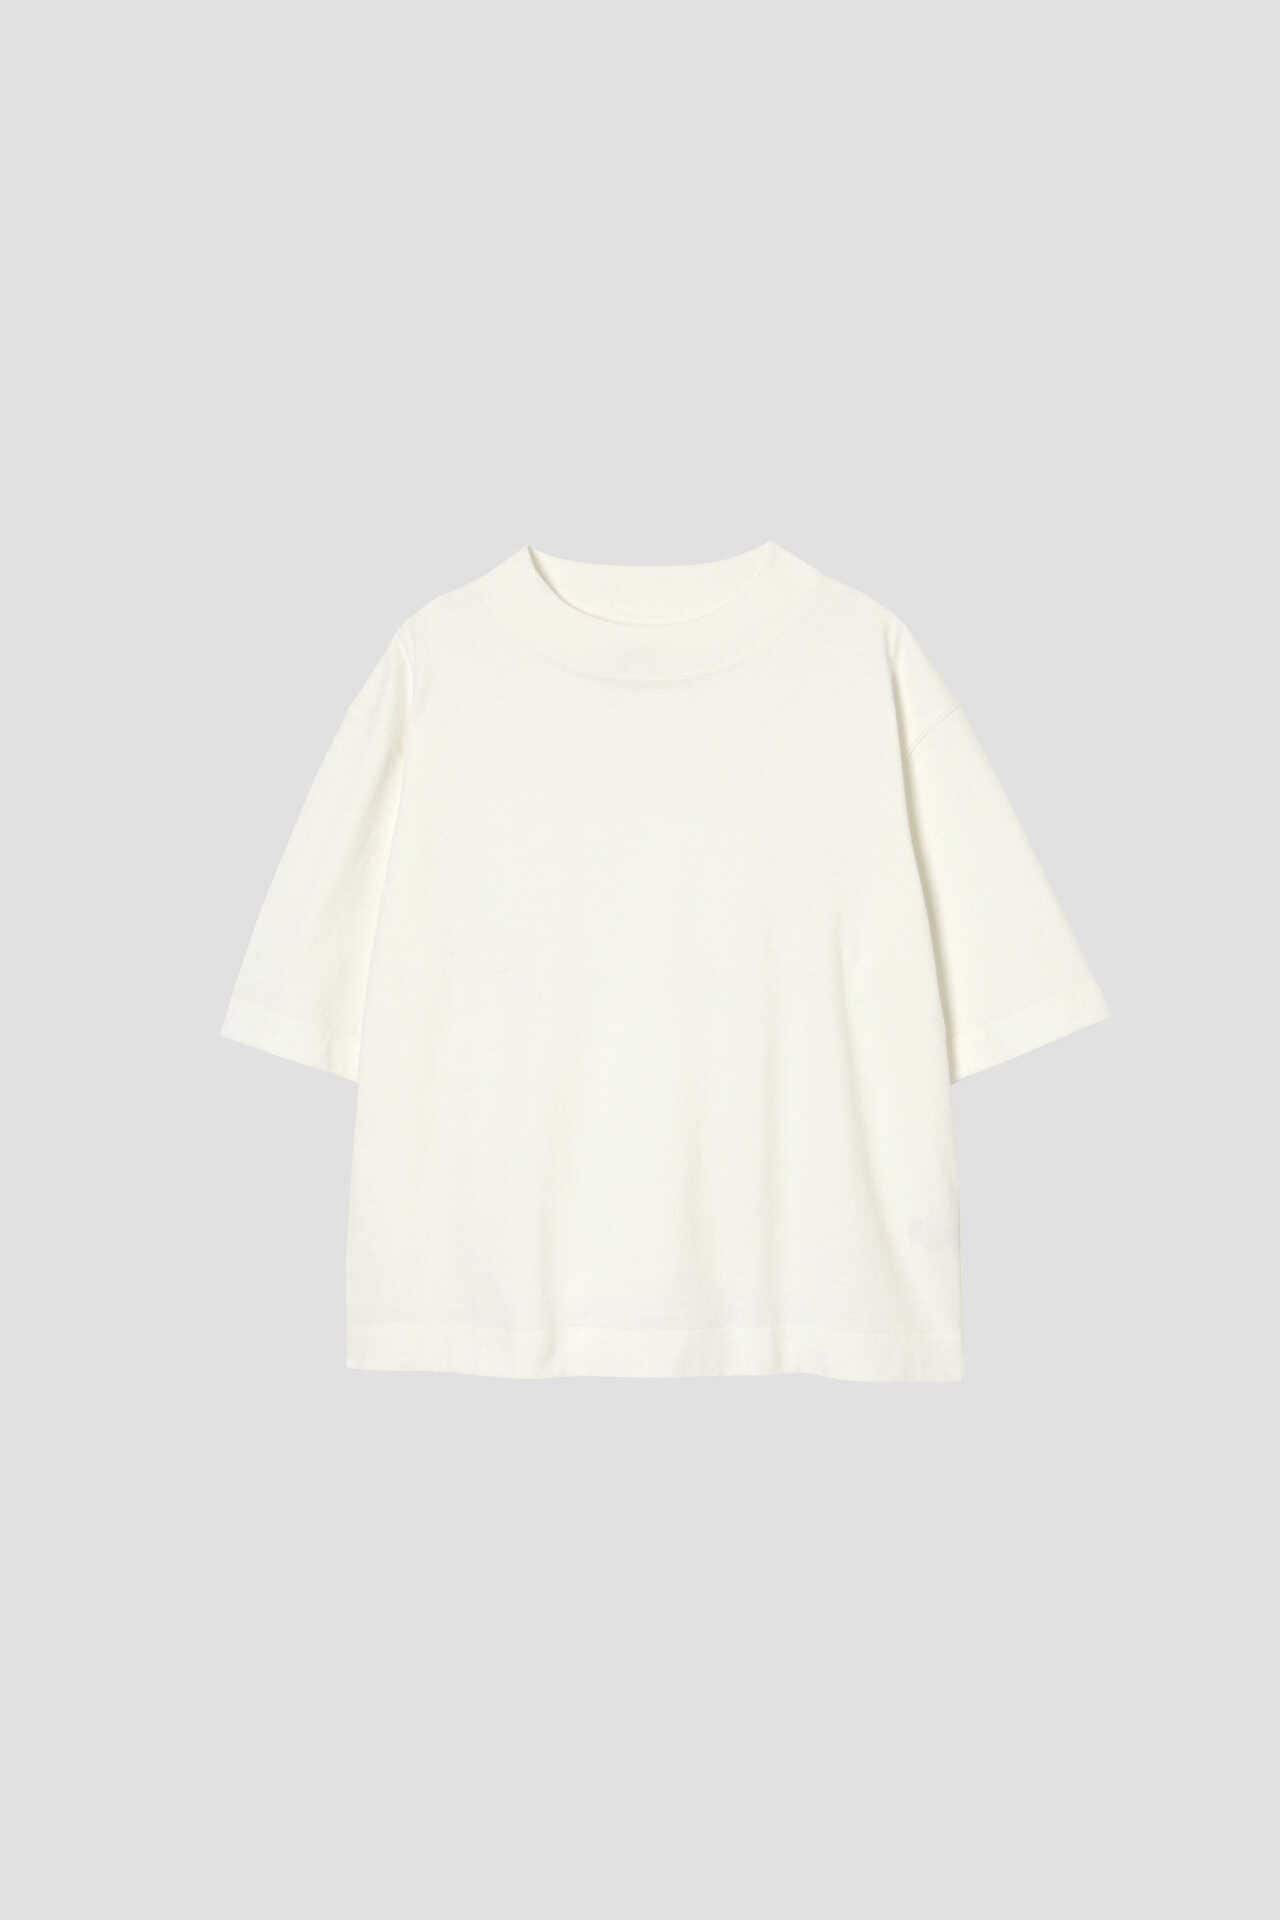 NATURAL COTTON JERSEY6